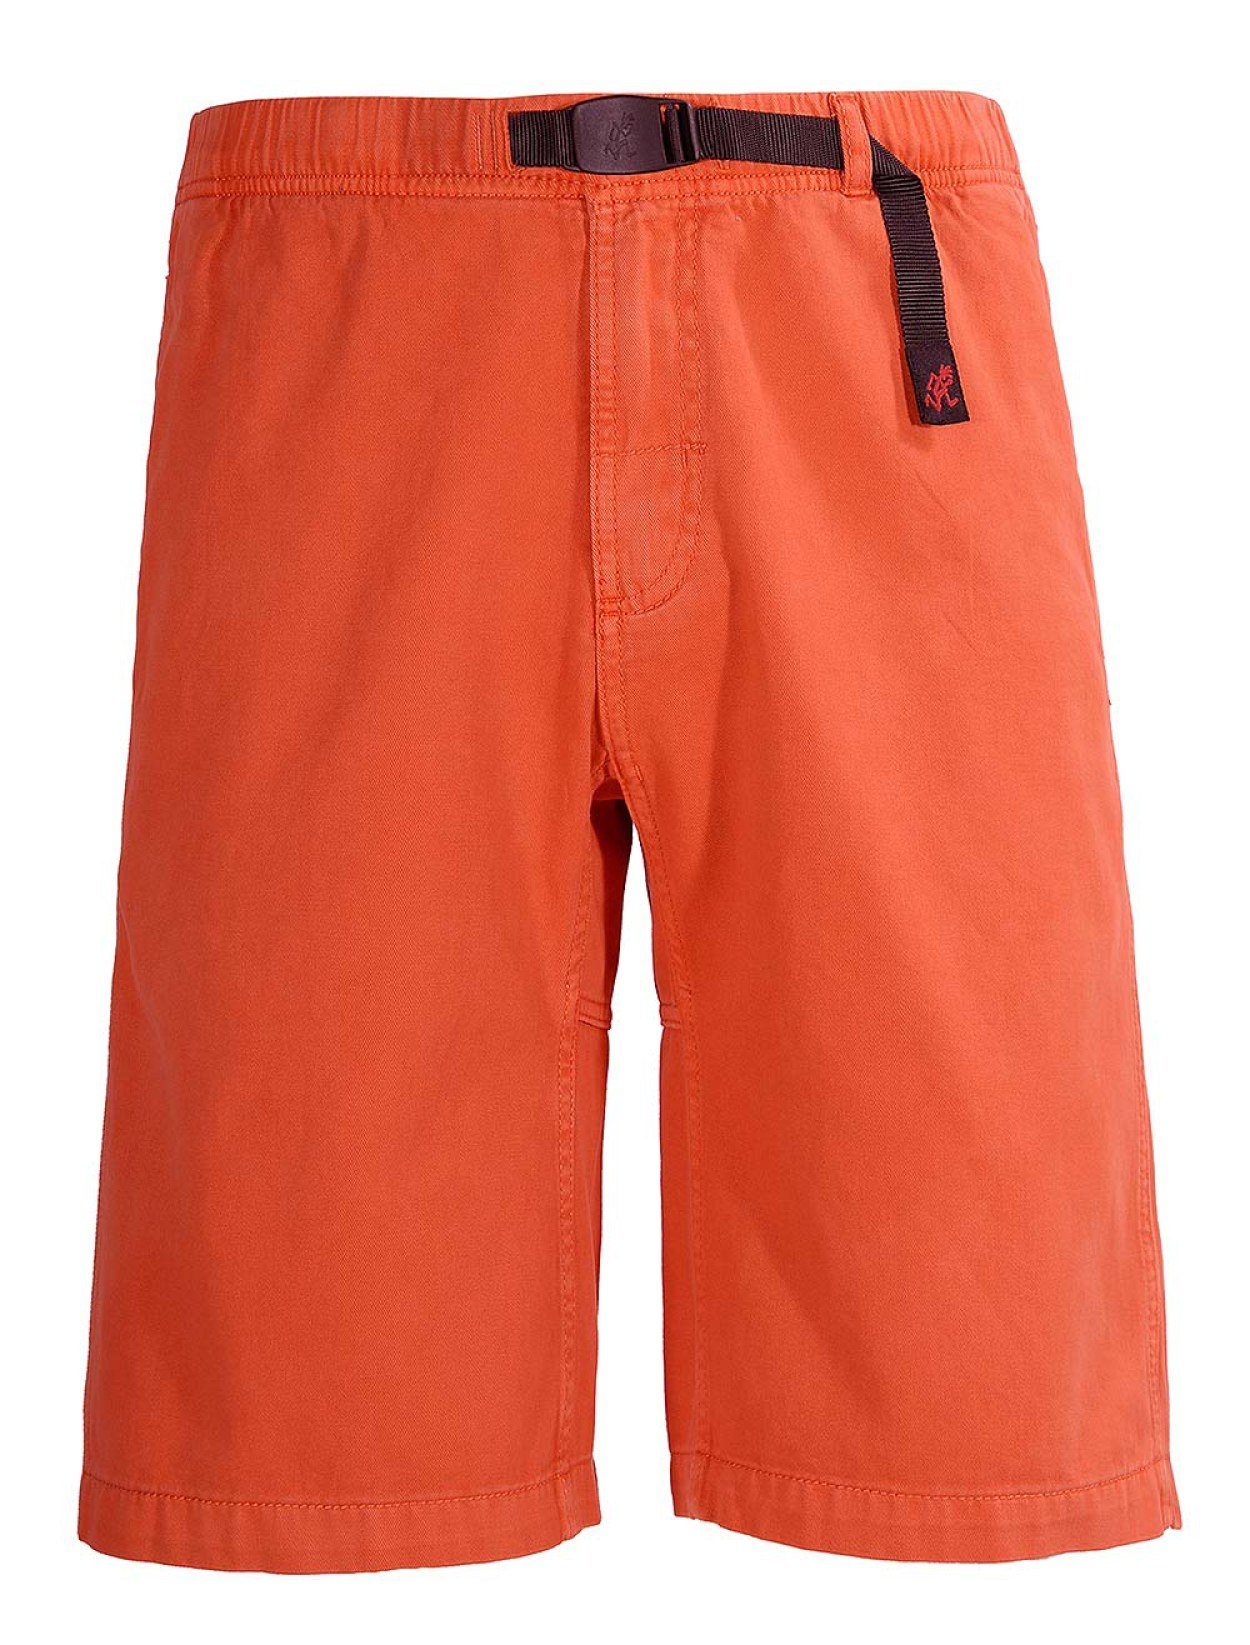 Gramicci Mens Rockin Sport Short, Orange Spice - Size: LG by Gramicci